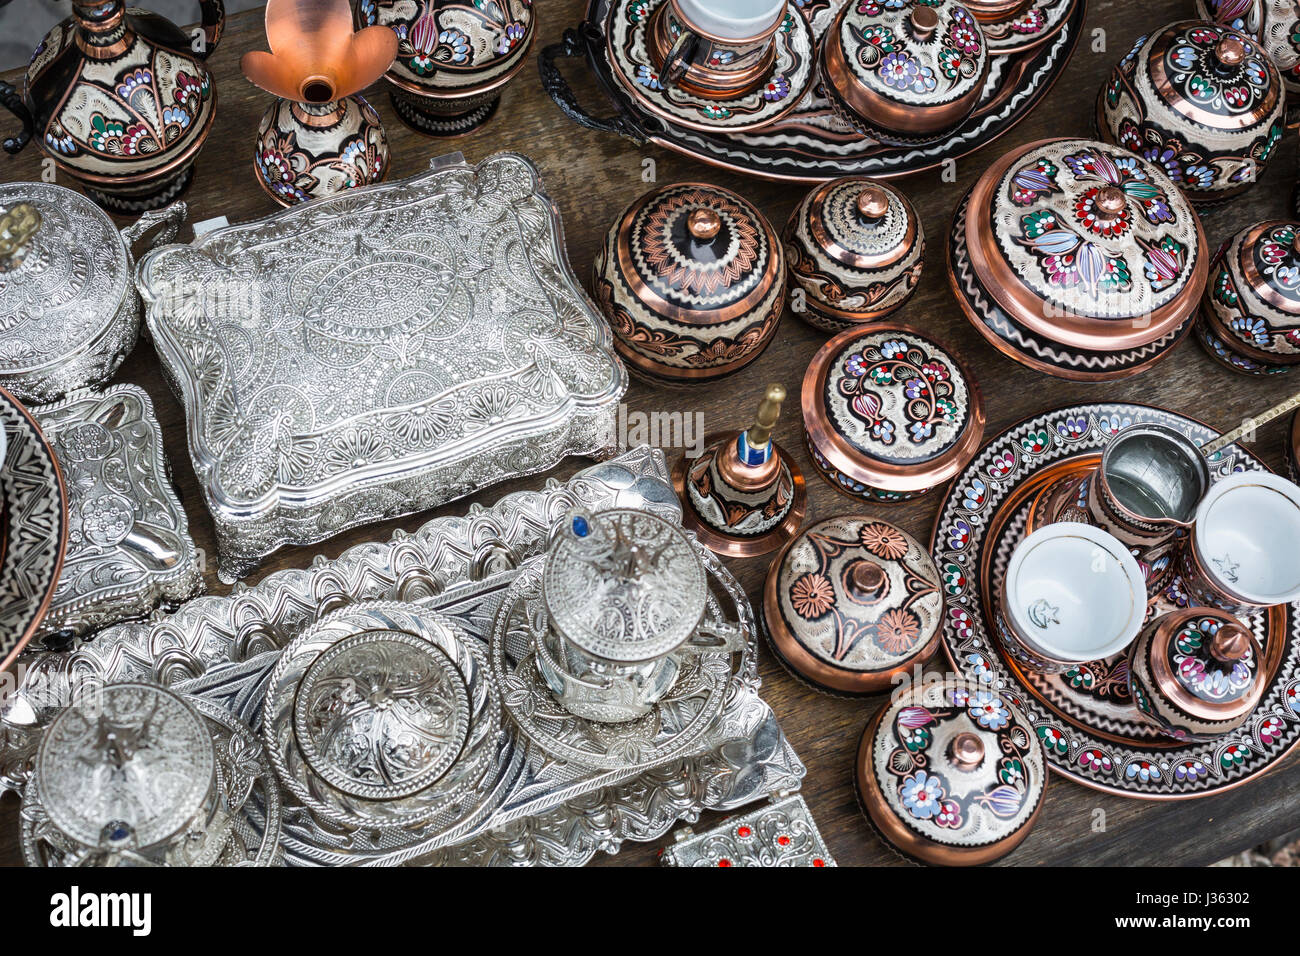 Traditional handcrafted copper coffee pots in souvenir shops in Sarajevo. Bosnia and Herzegovina. Stock Photo